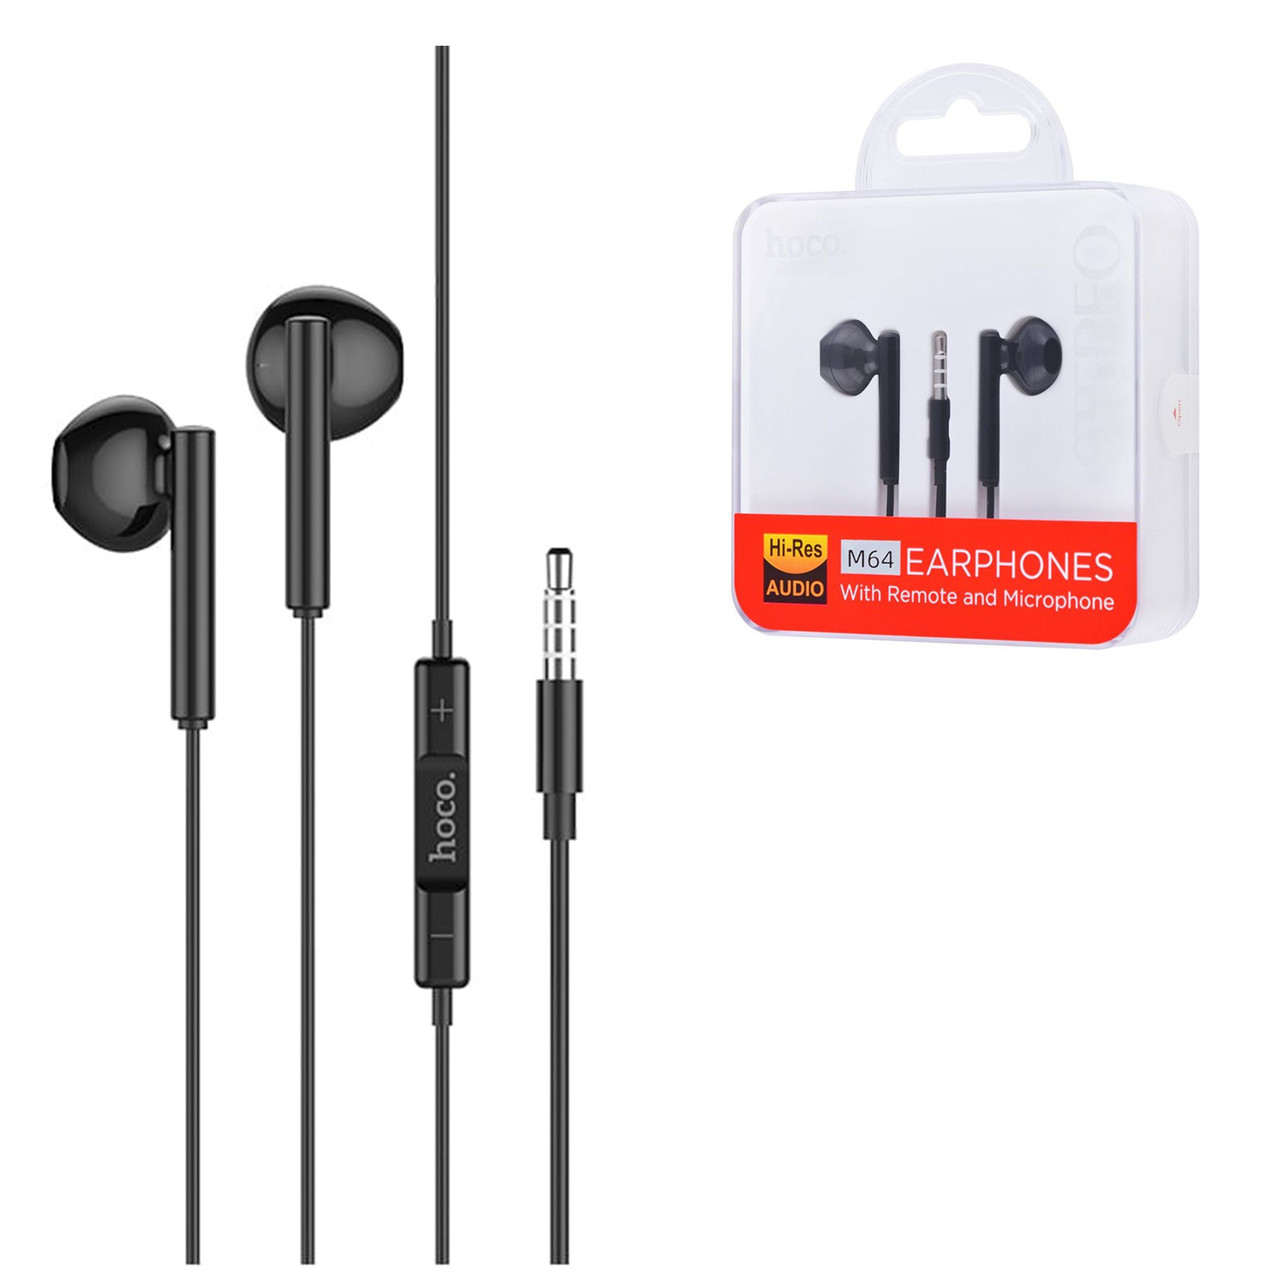 Гарнитура Hoco M64 Stereo Earphones, Black